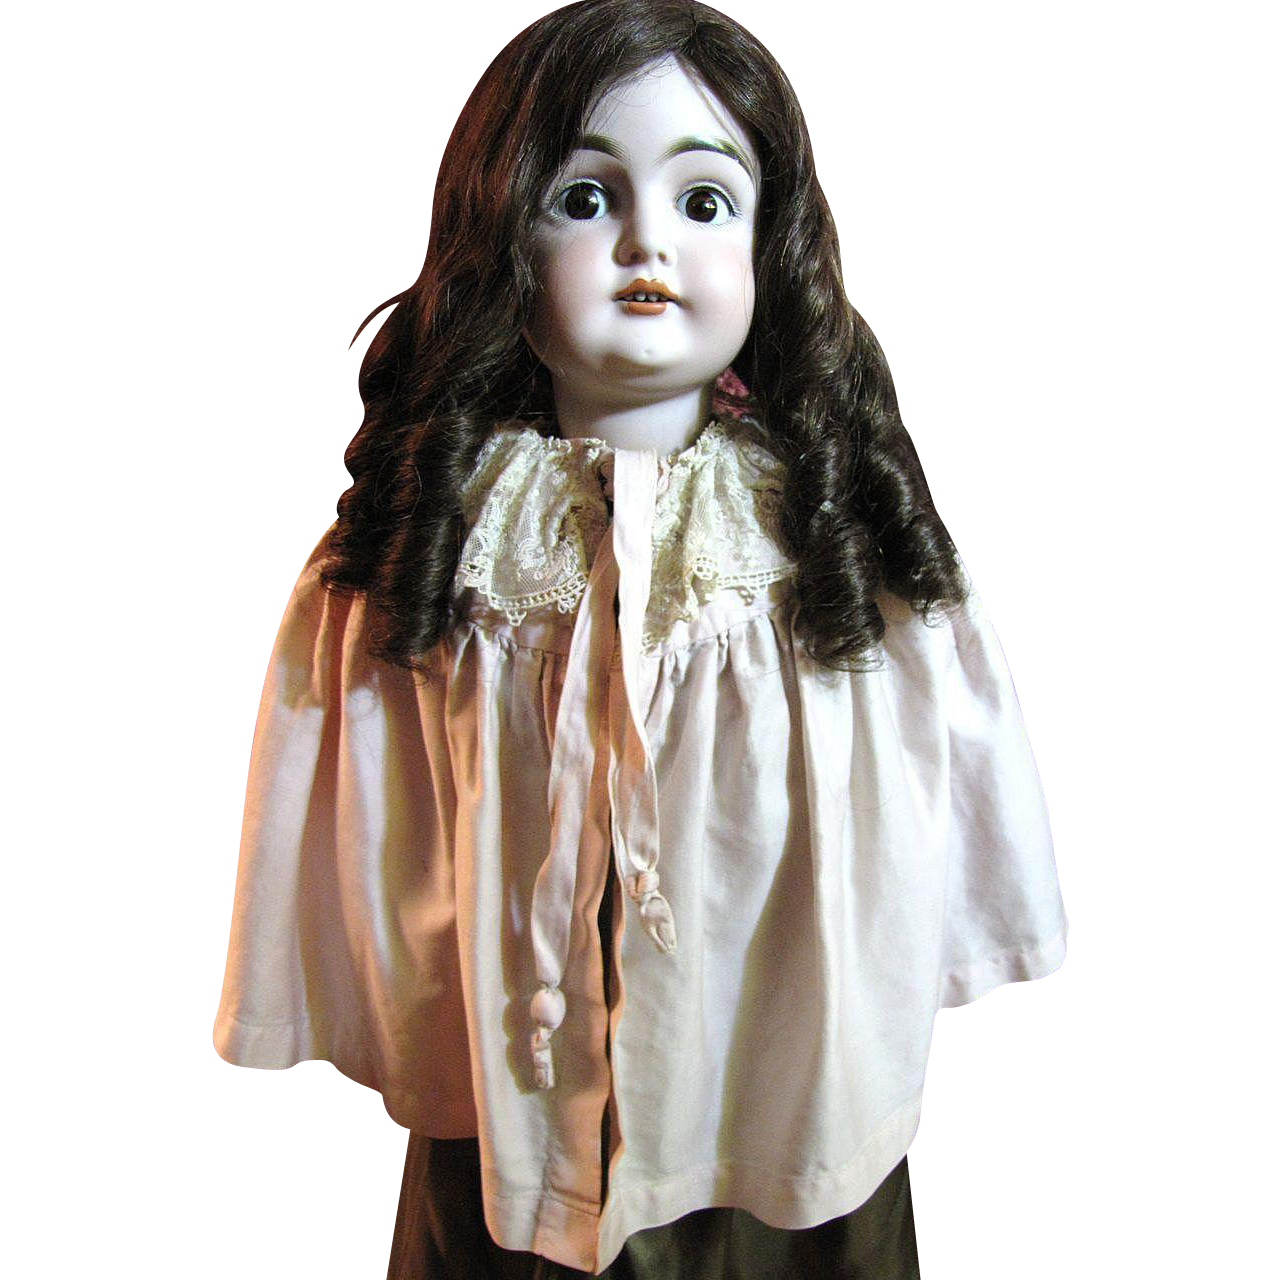 Sweet Little Pink Doll Cape with Lace Trim